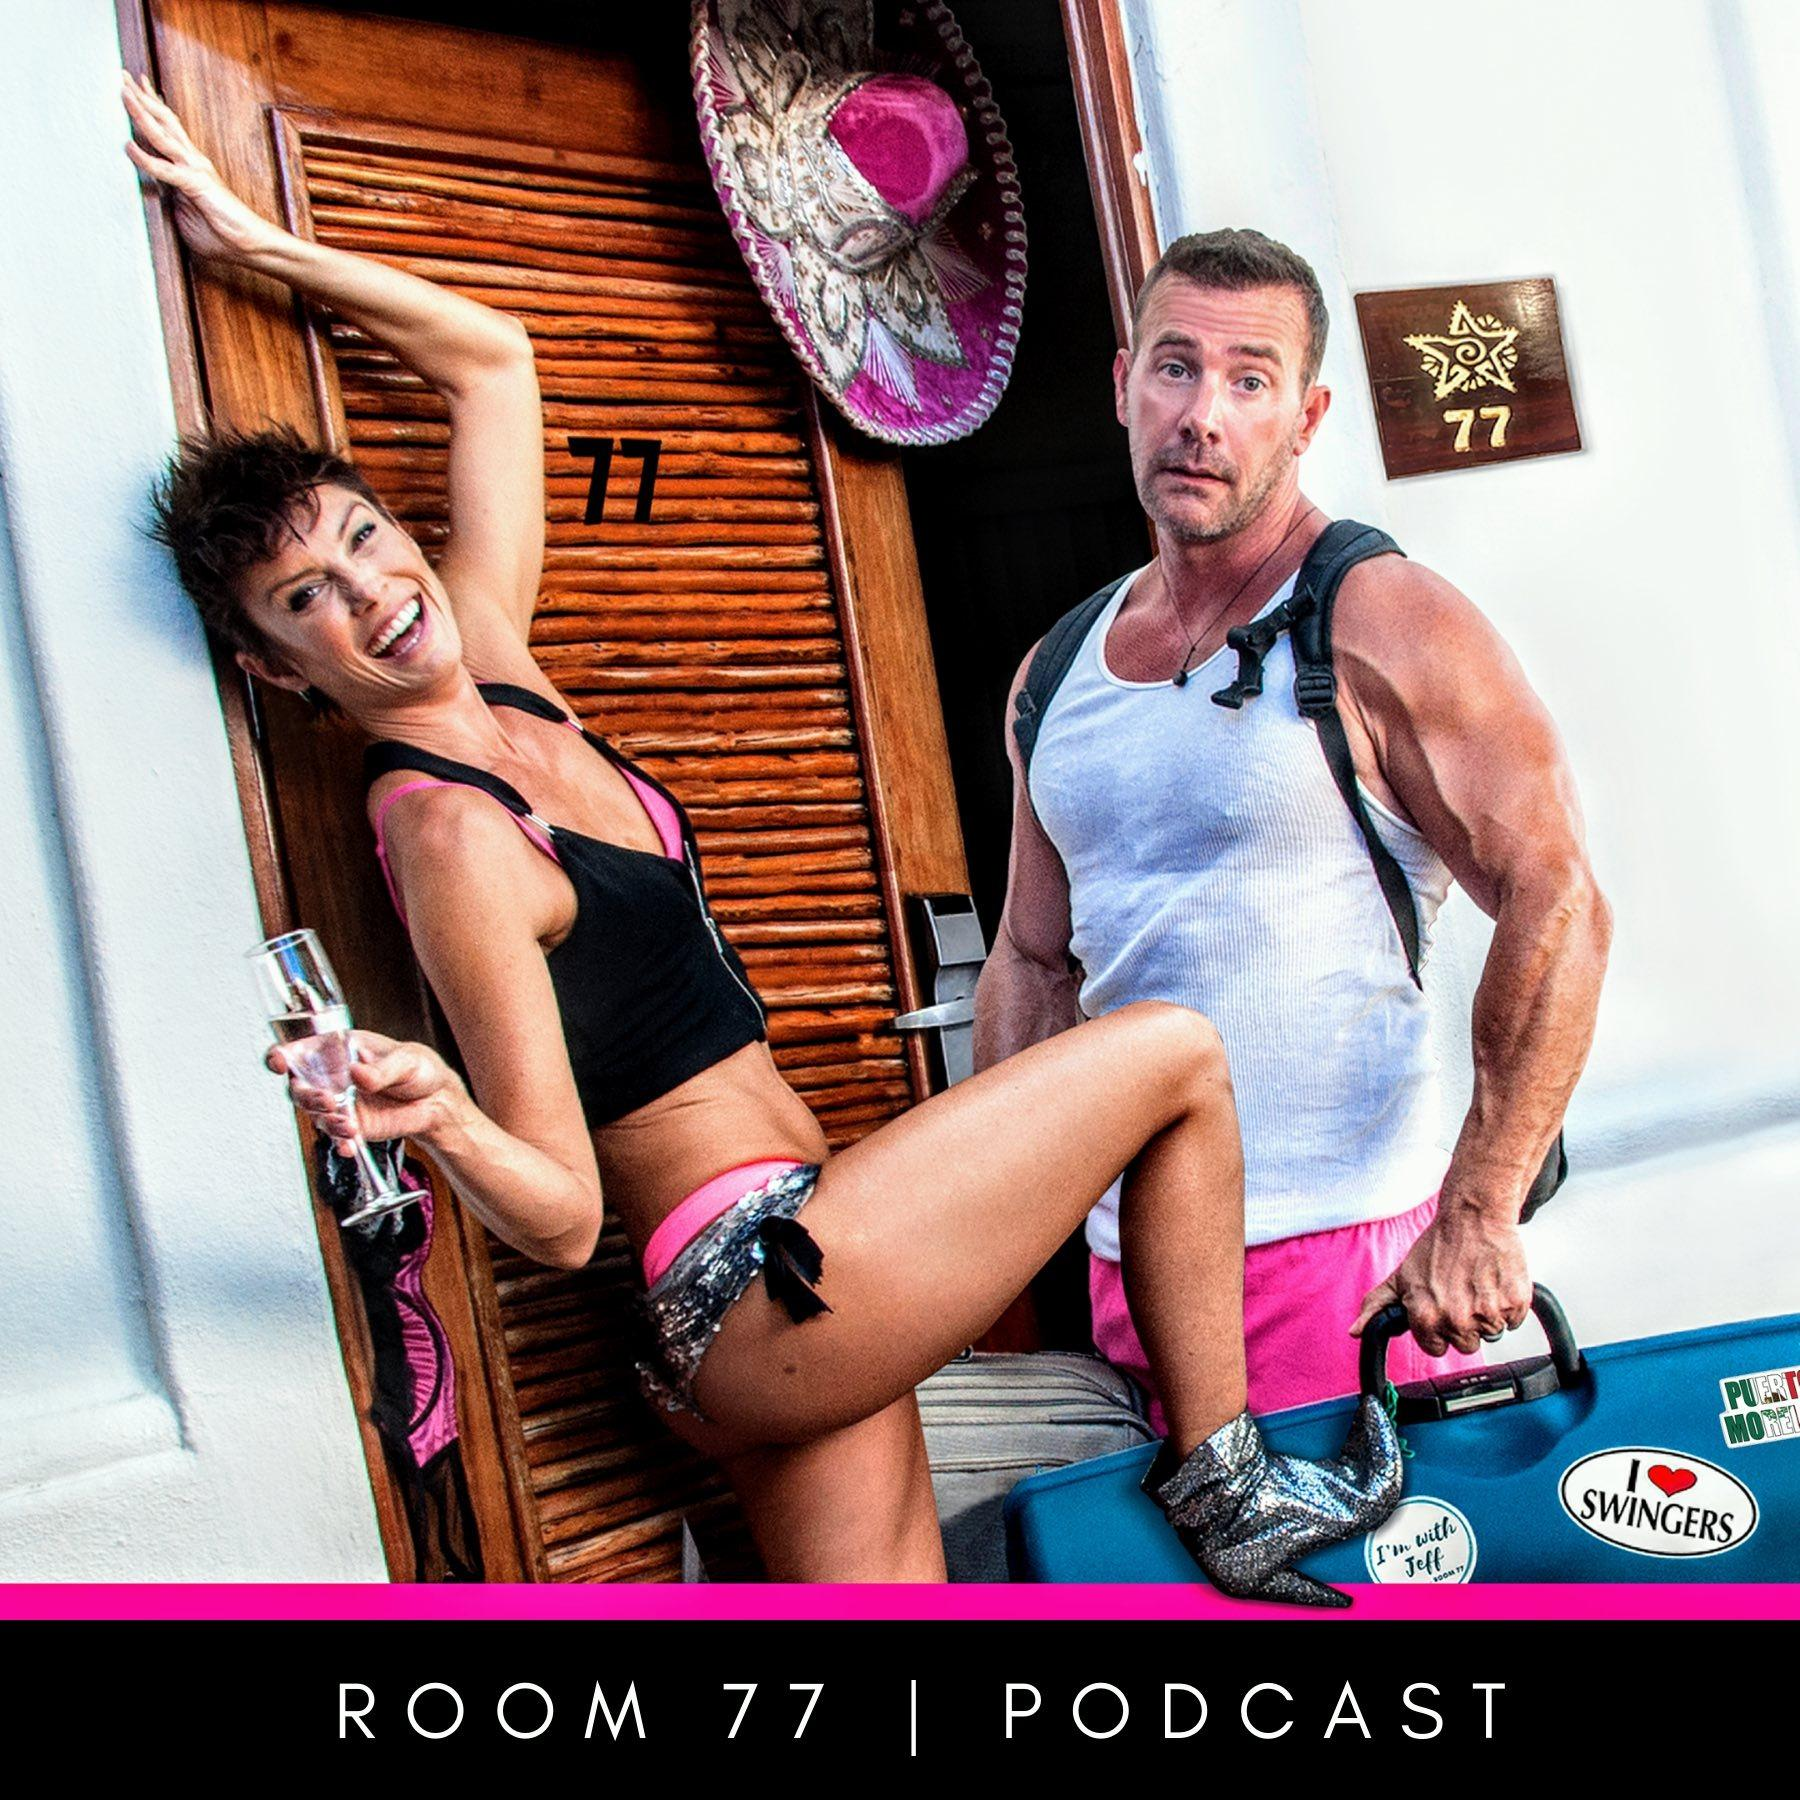 Room 77 | Podcast: A Swinger Podcast | Listen via Stitcher for Podcasts